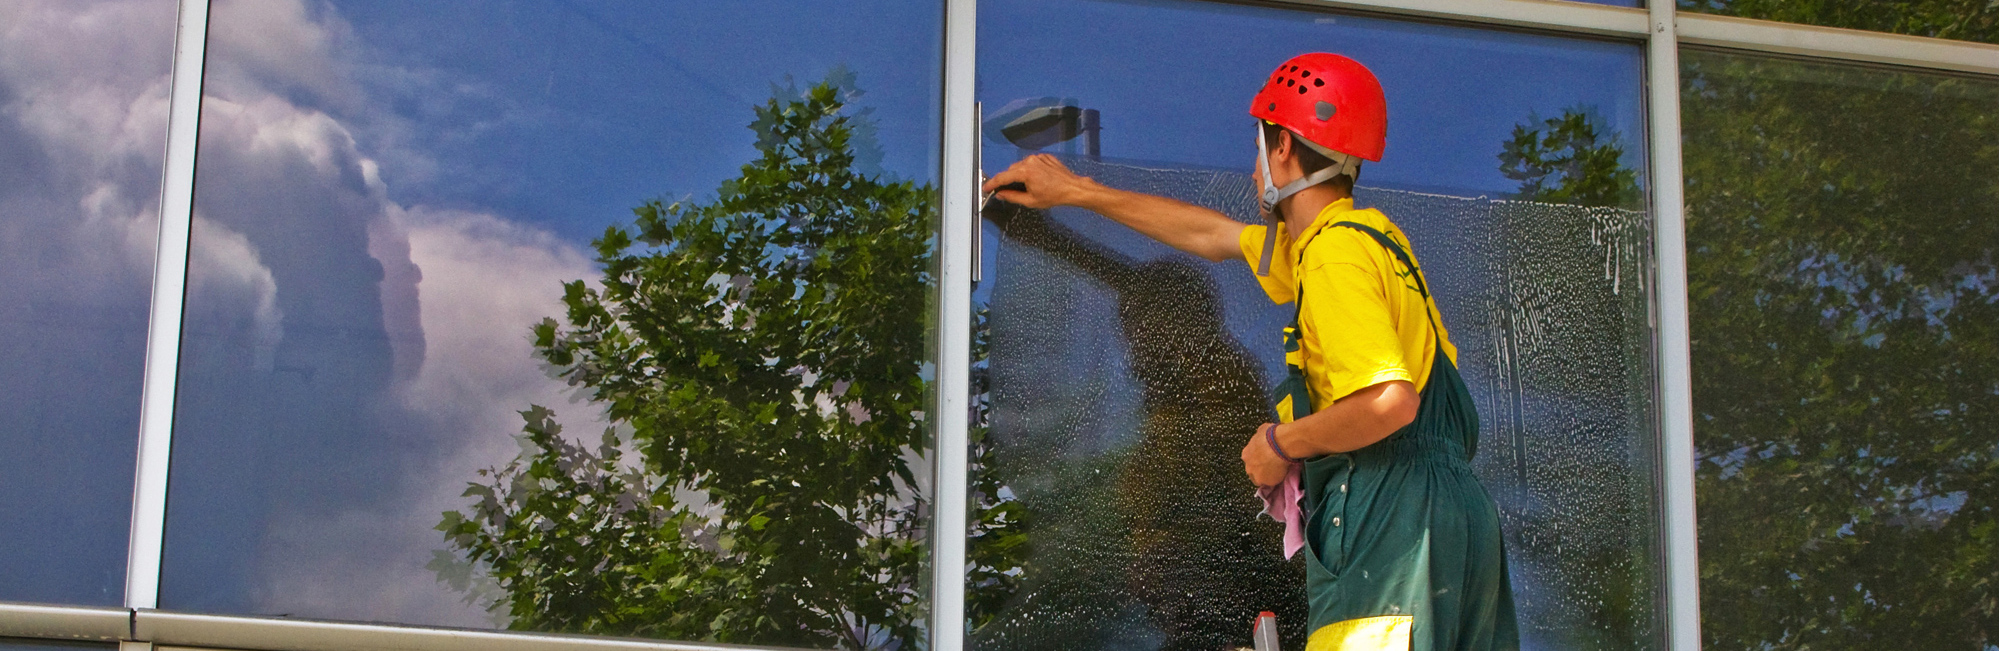 Expert providing Speedy window cleaning service in Honolulu, HI